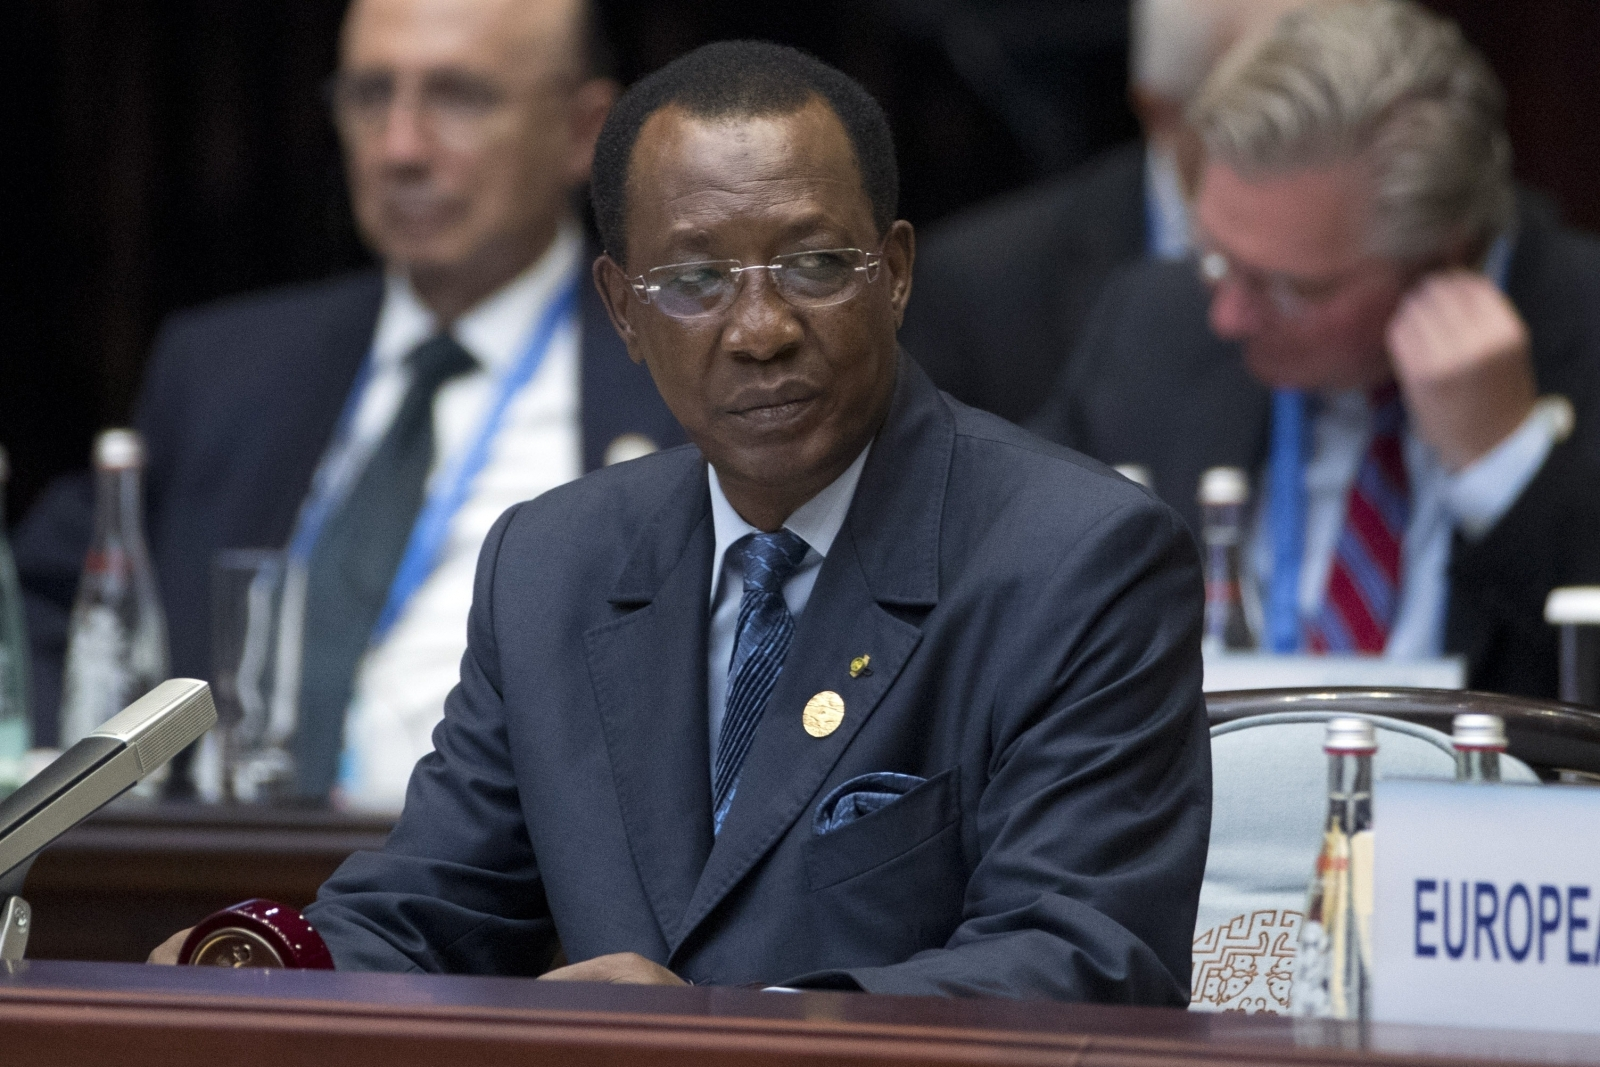 Chadian President Idriss Deby has met the US officials over its lack of secure passport paper and other security concerns